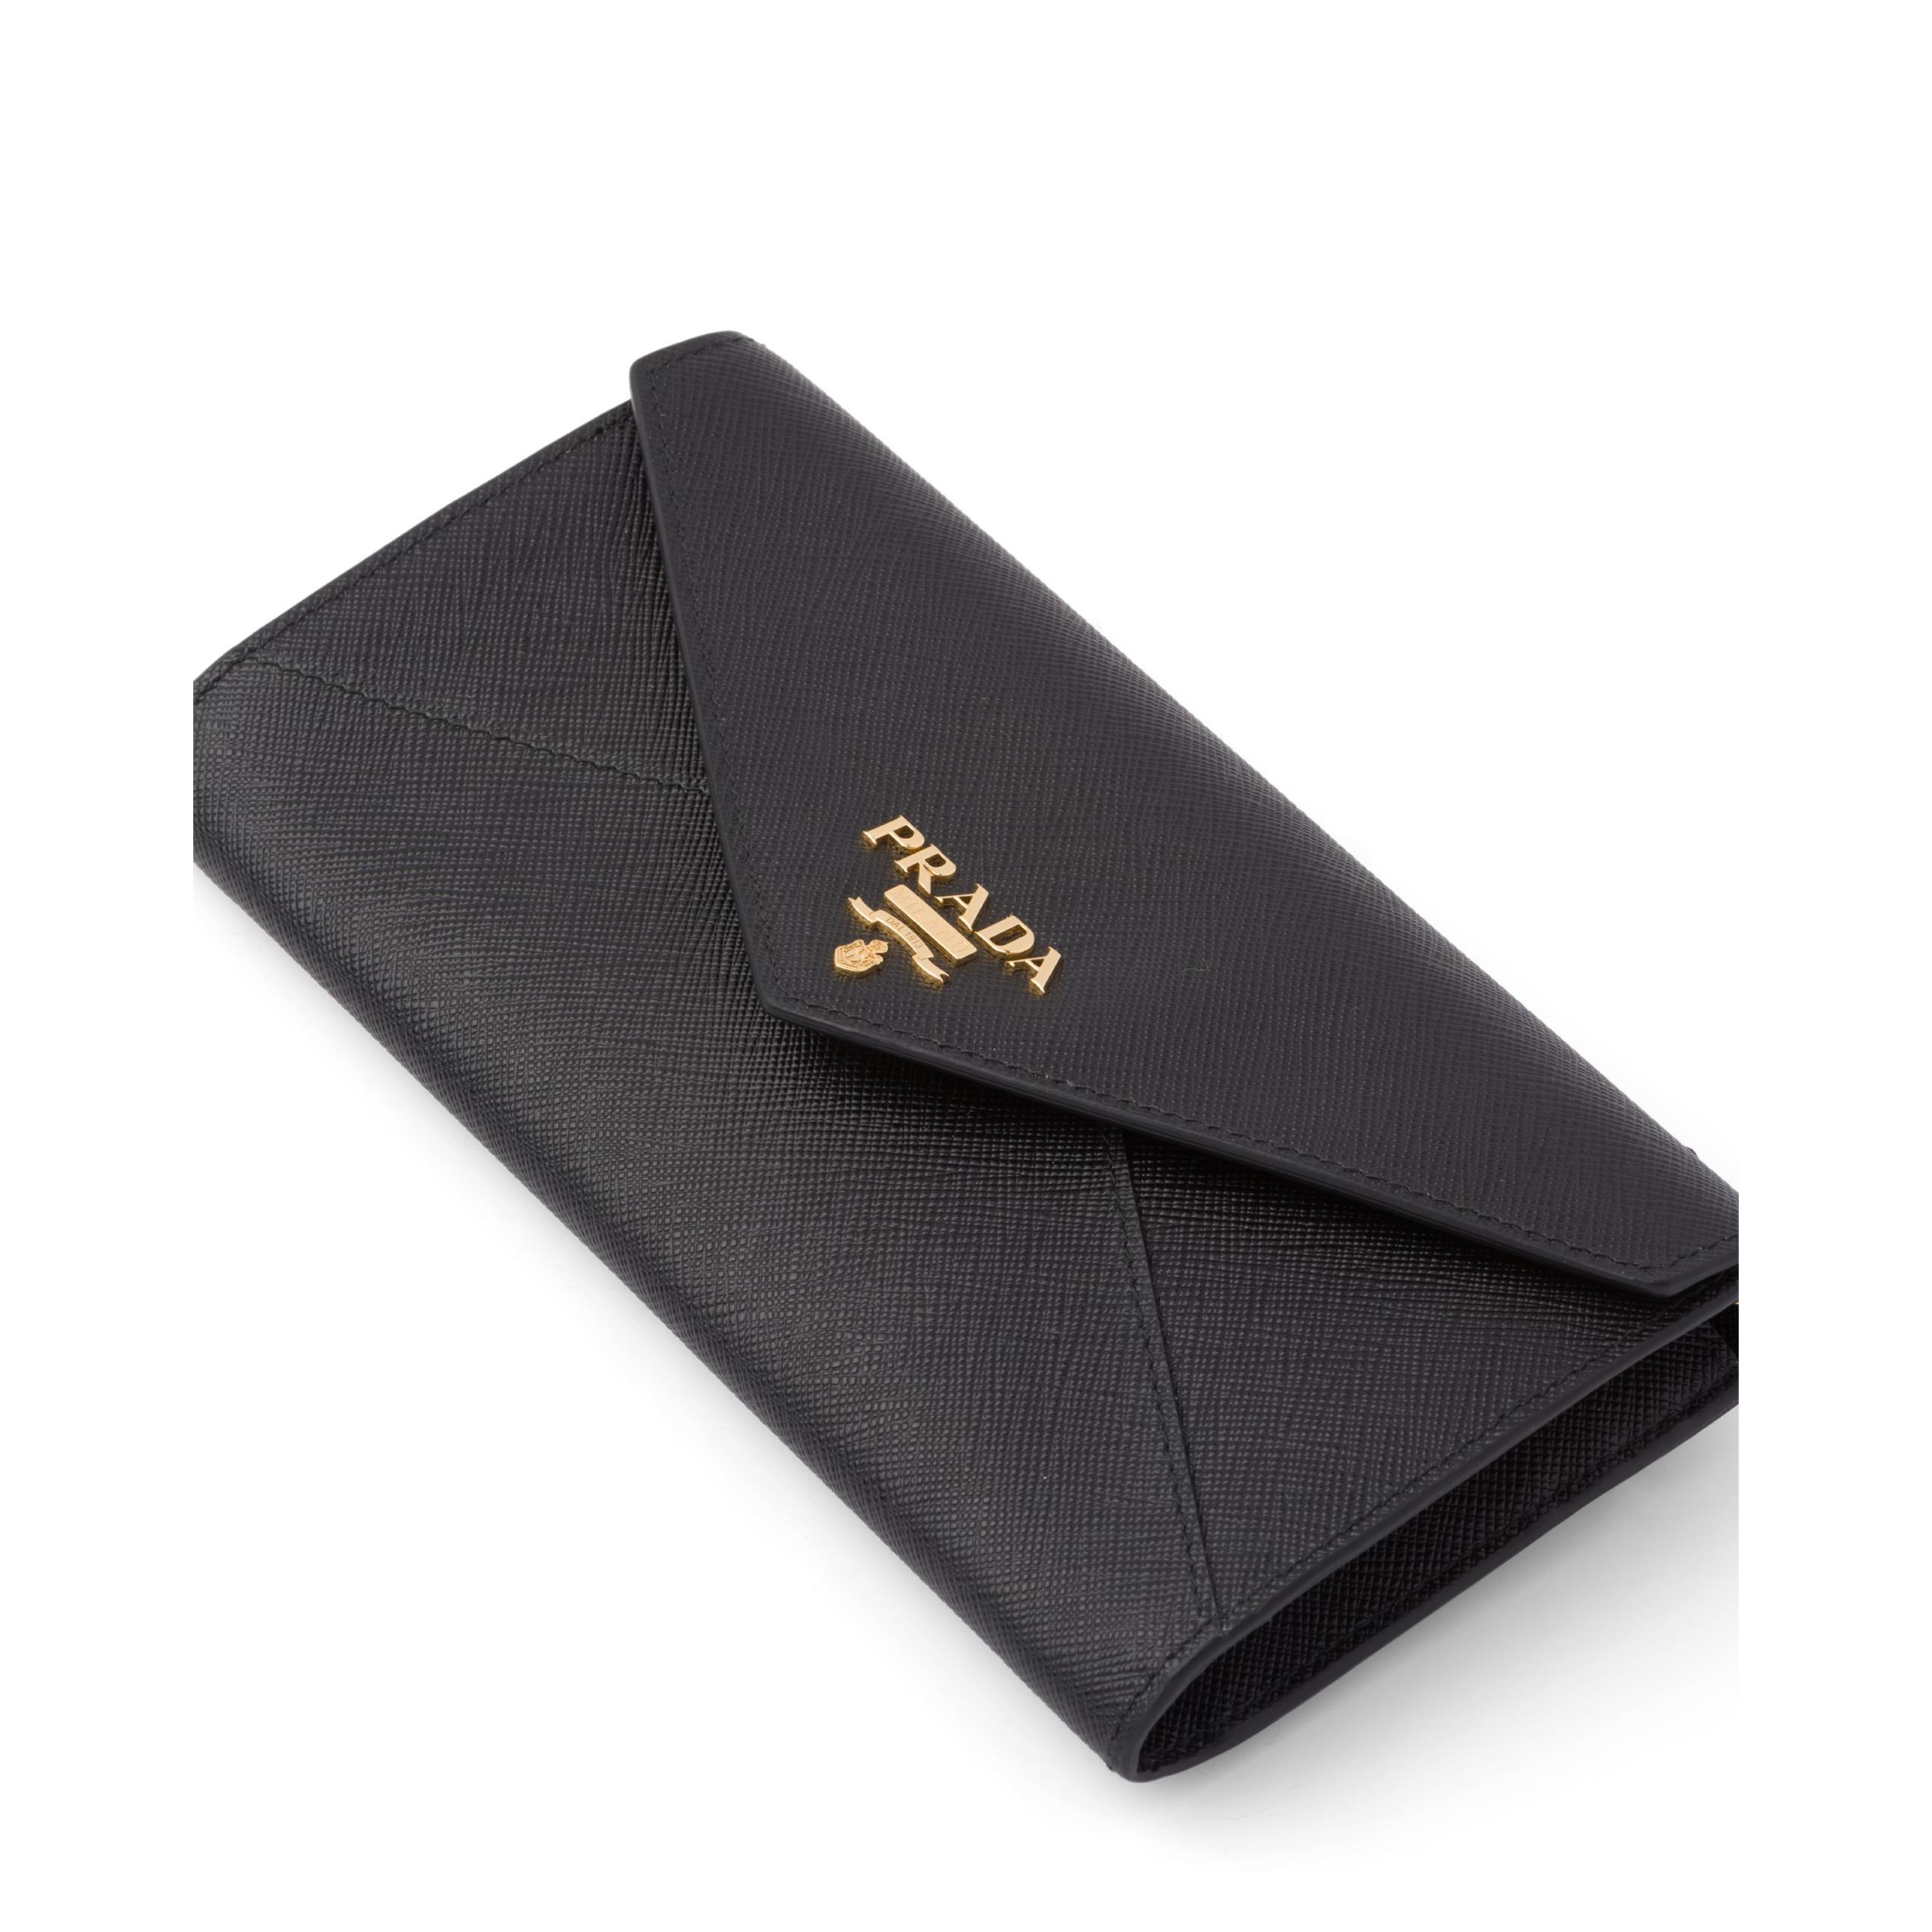 Saffiano Leather Wallet With Shoulder Strap Women Black 1